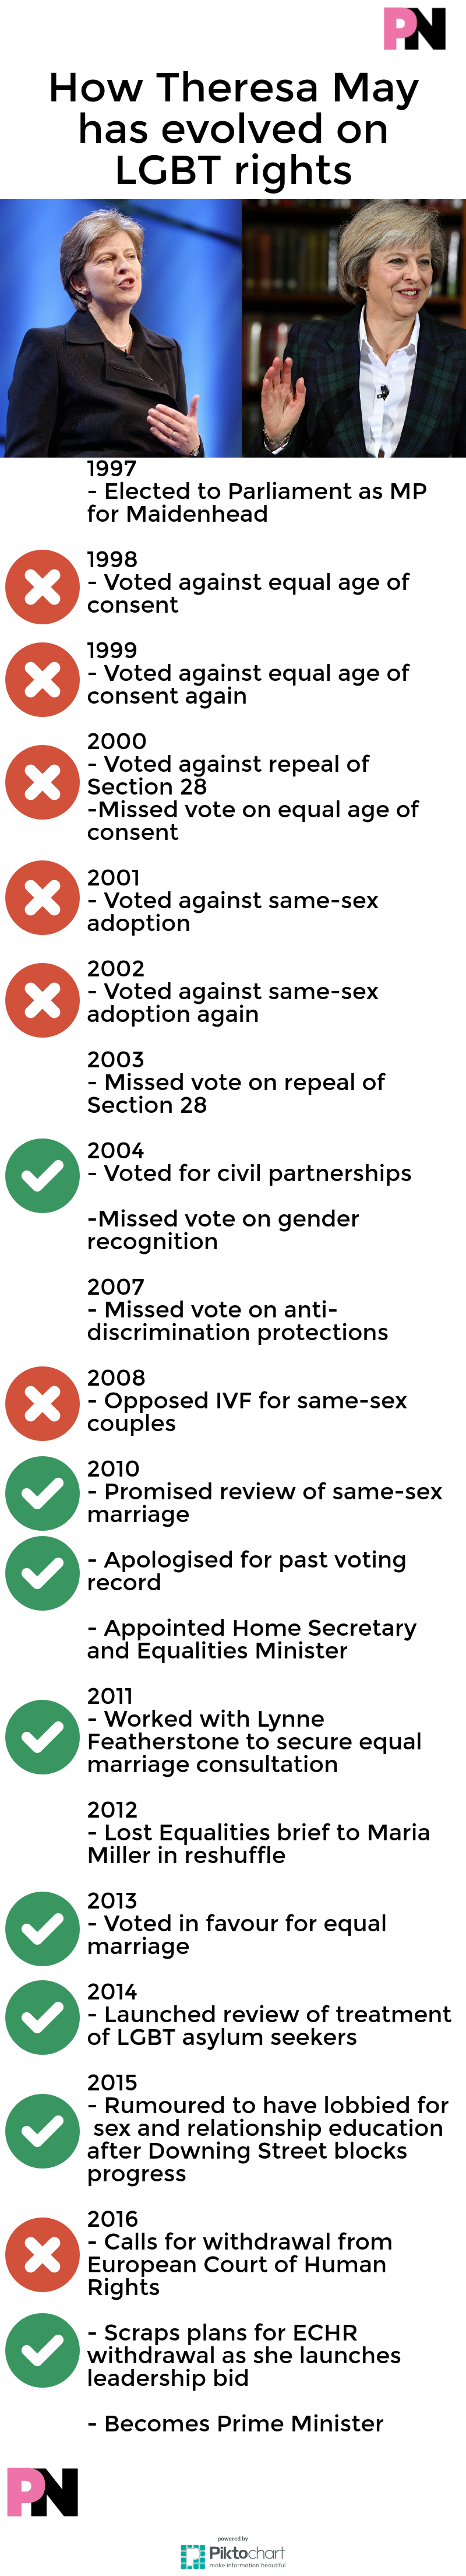 fact check what actually is theresa s record on lgbt rights  theresa infographic